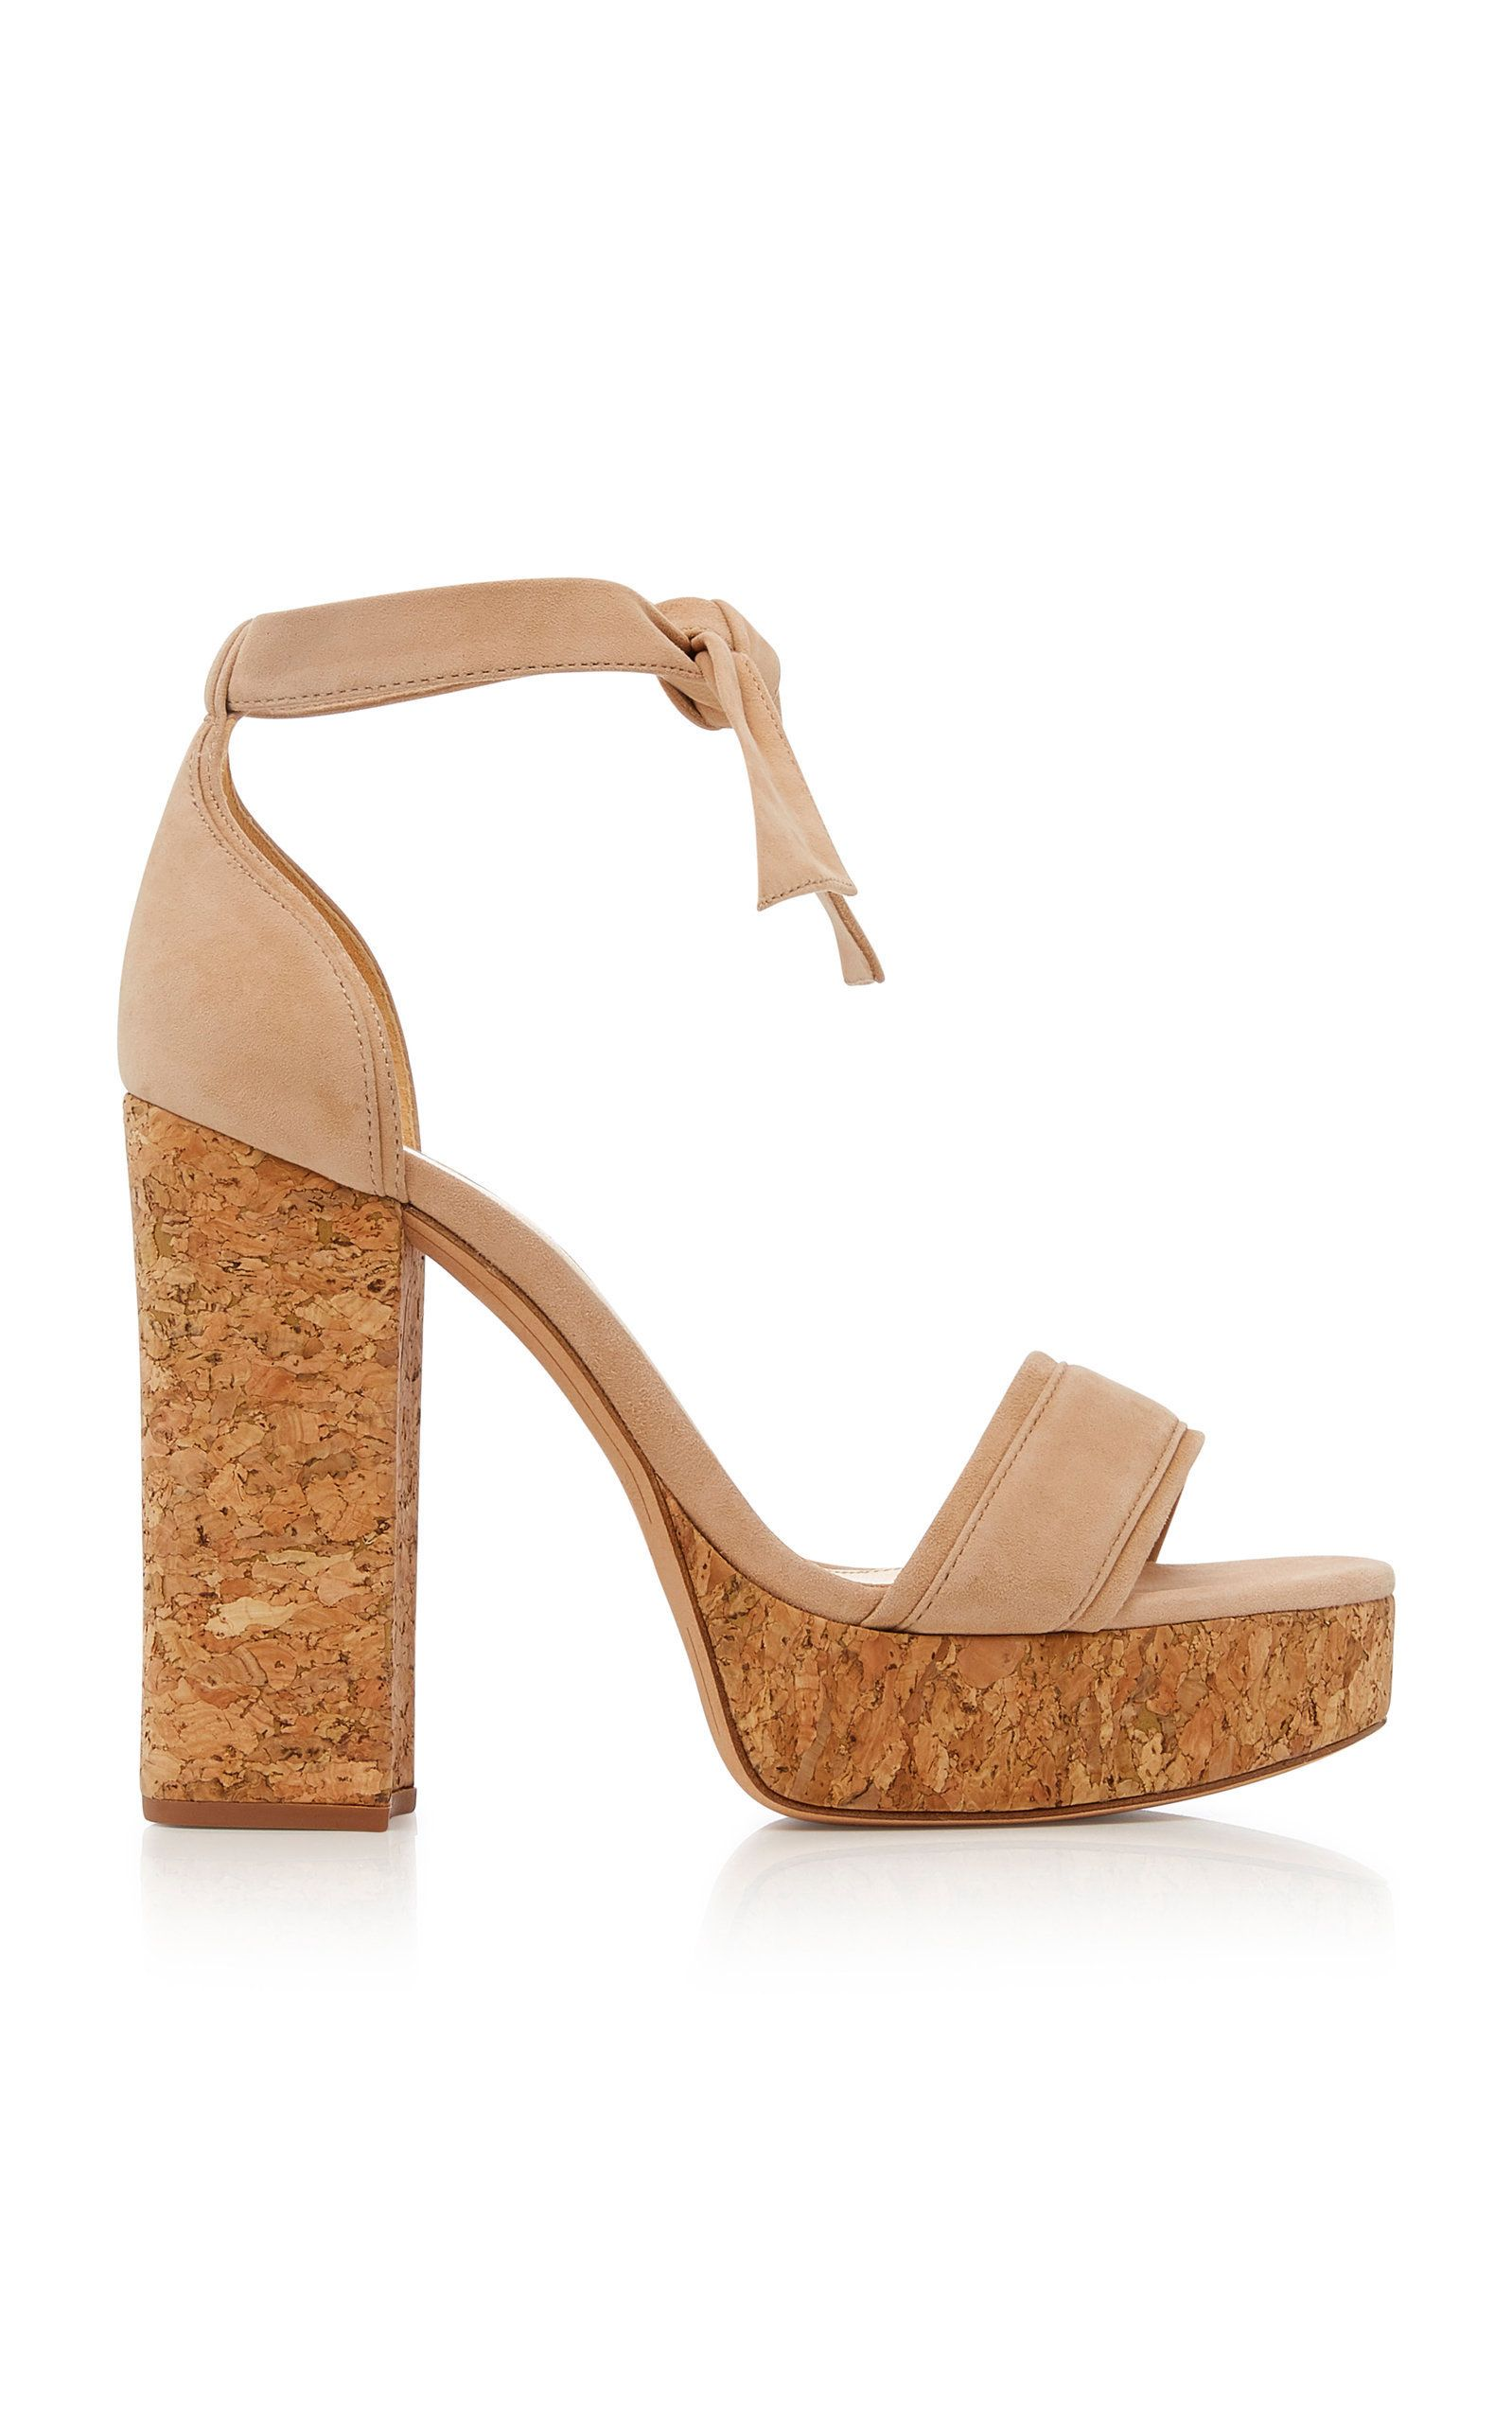 1b958299d33 ALEXANDRE BIRMAN CELINE PLATFORM SUEDE SANDALS.  alexandrebirman  shoes